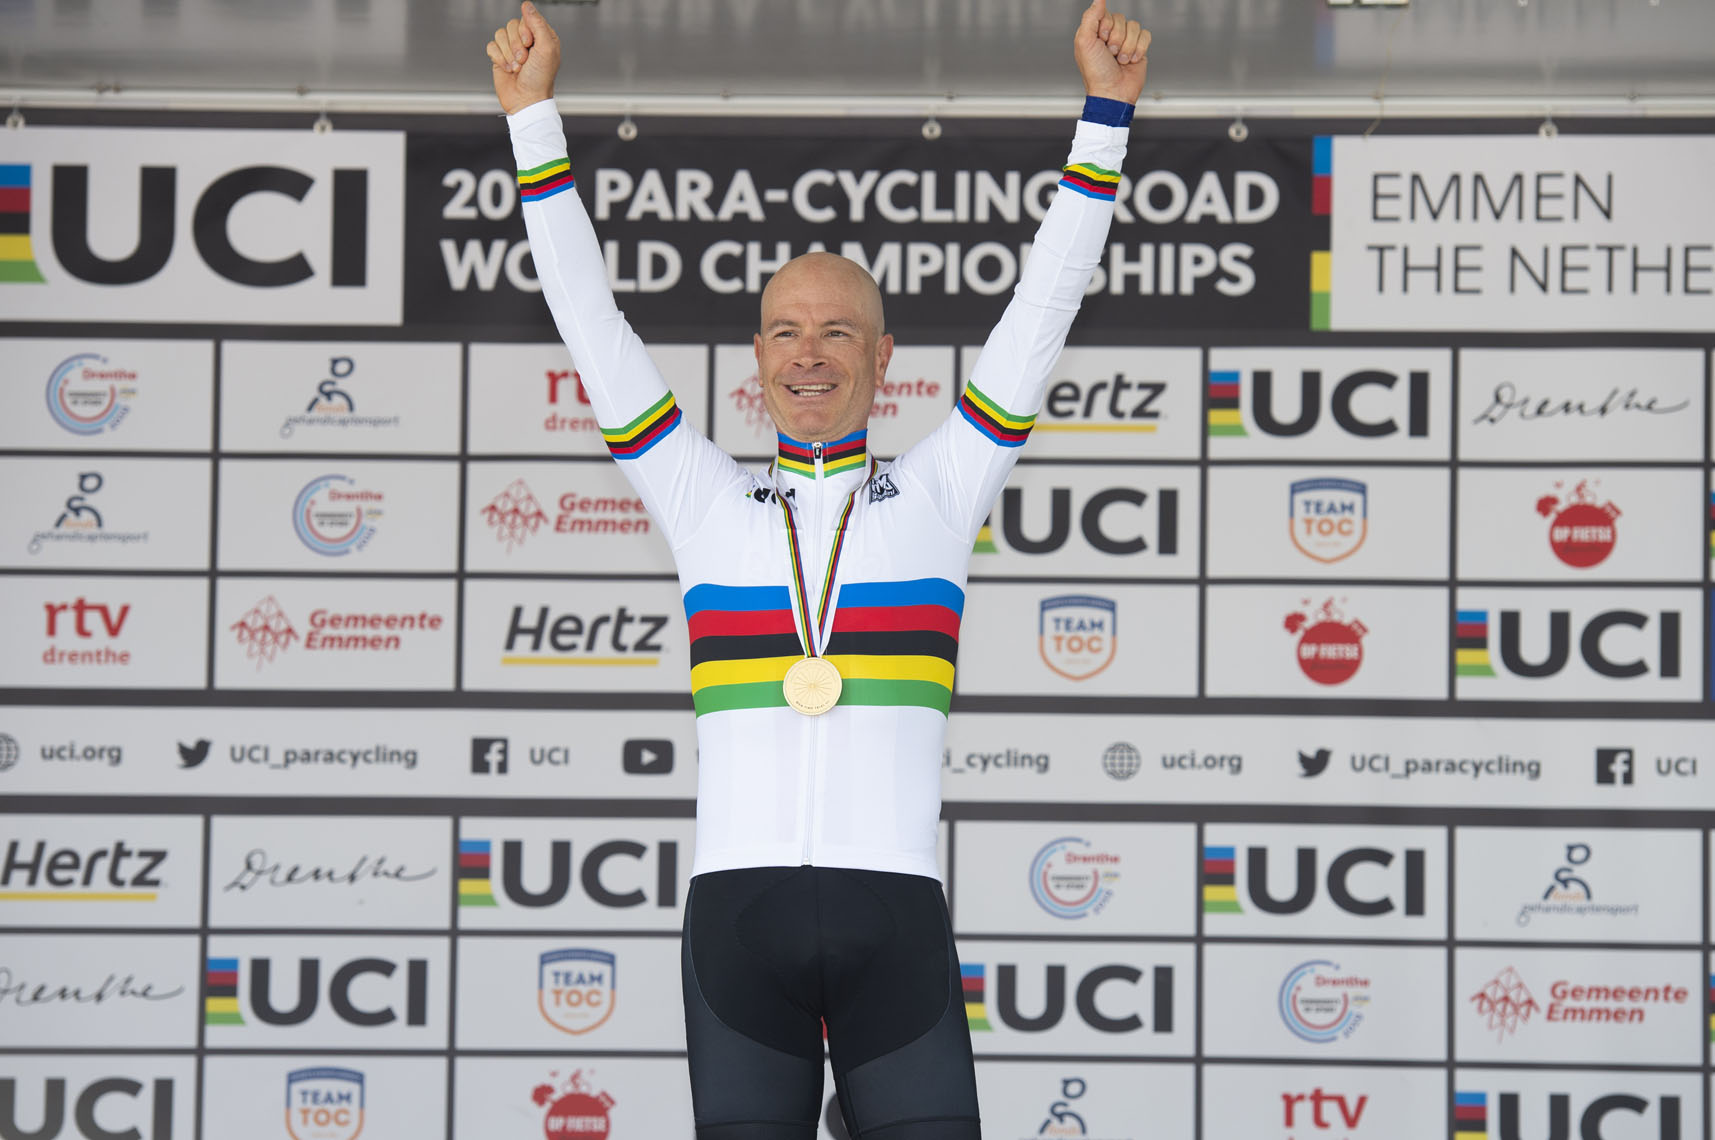 Aaron Keith, 2019 Paracycling Road World Championships